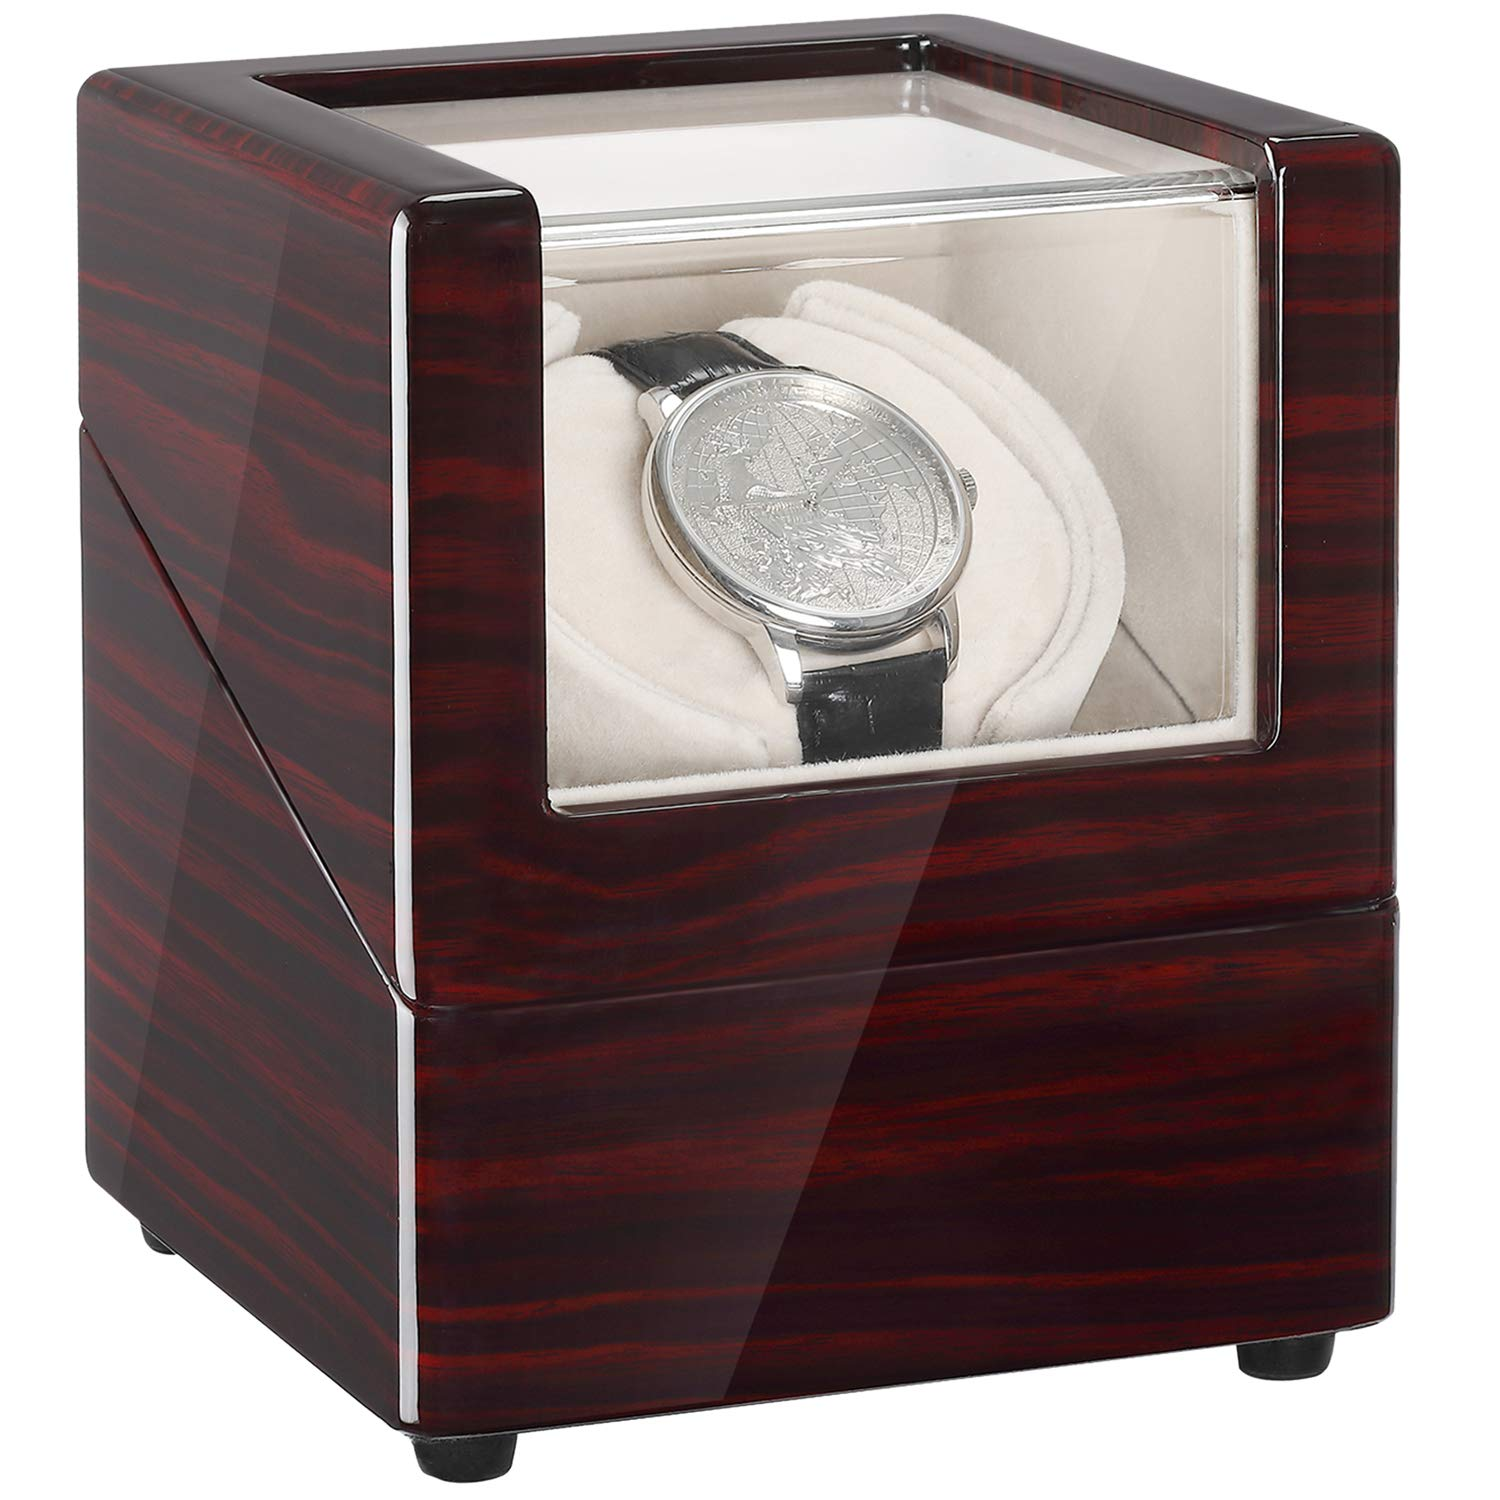 CHIYODA Single Automatic Watch Winder with Quite Motor-Unique12 Rotation Modes by CHIYODA